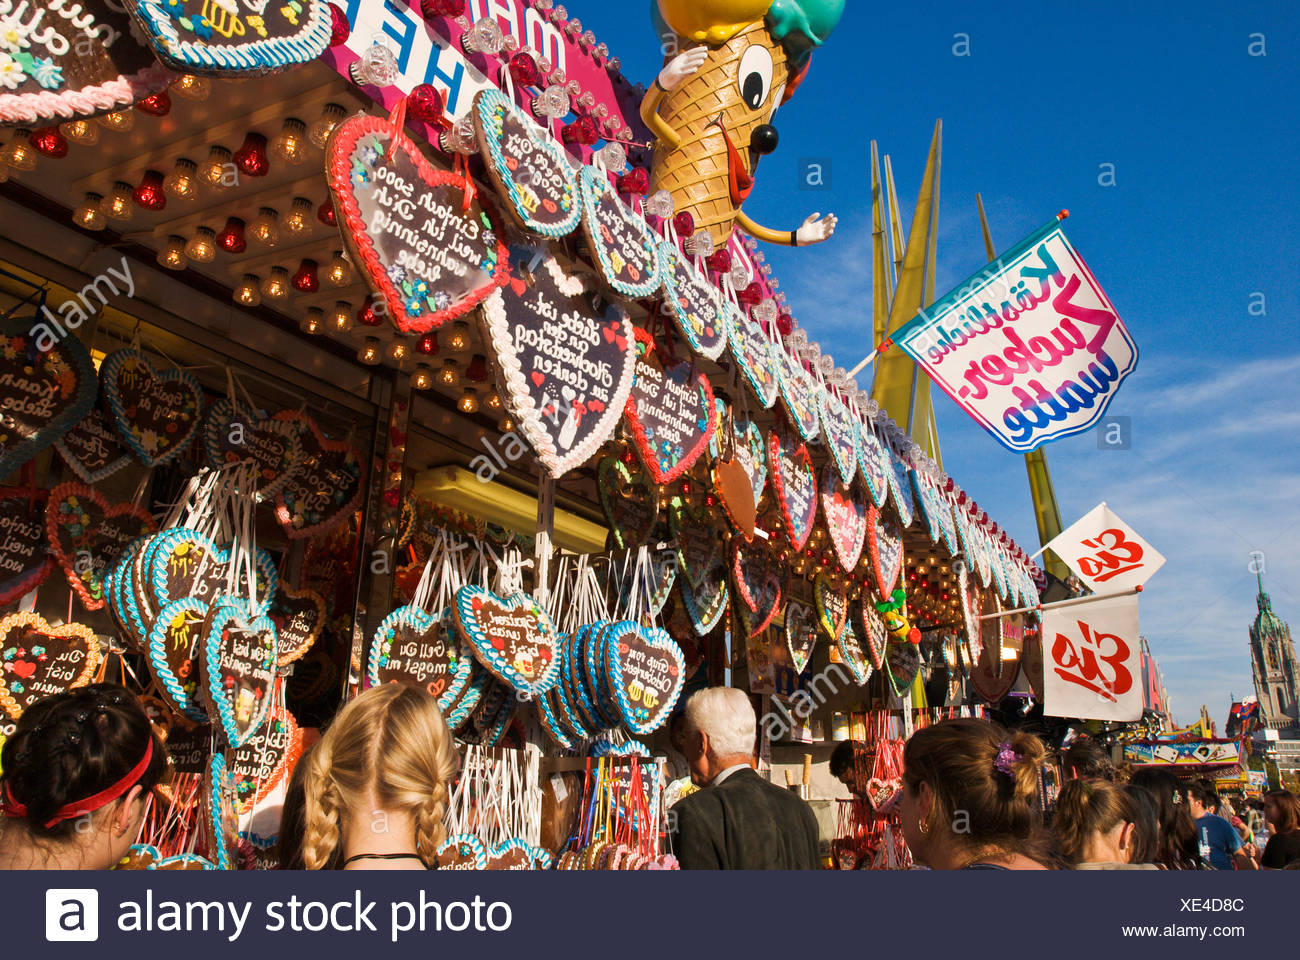 Gingerbread stand, Octoberfest, Munich, Bavaria, Germany - Stock Image